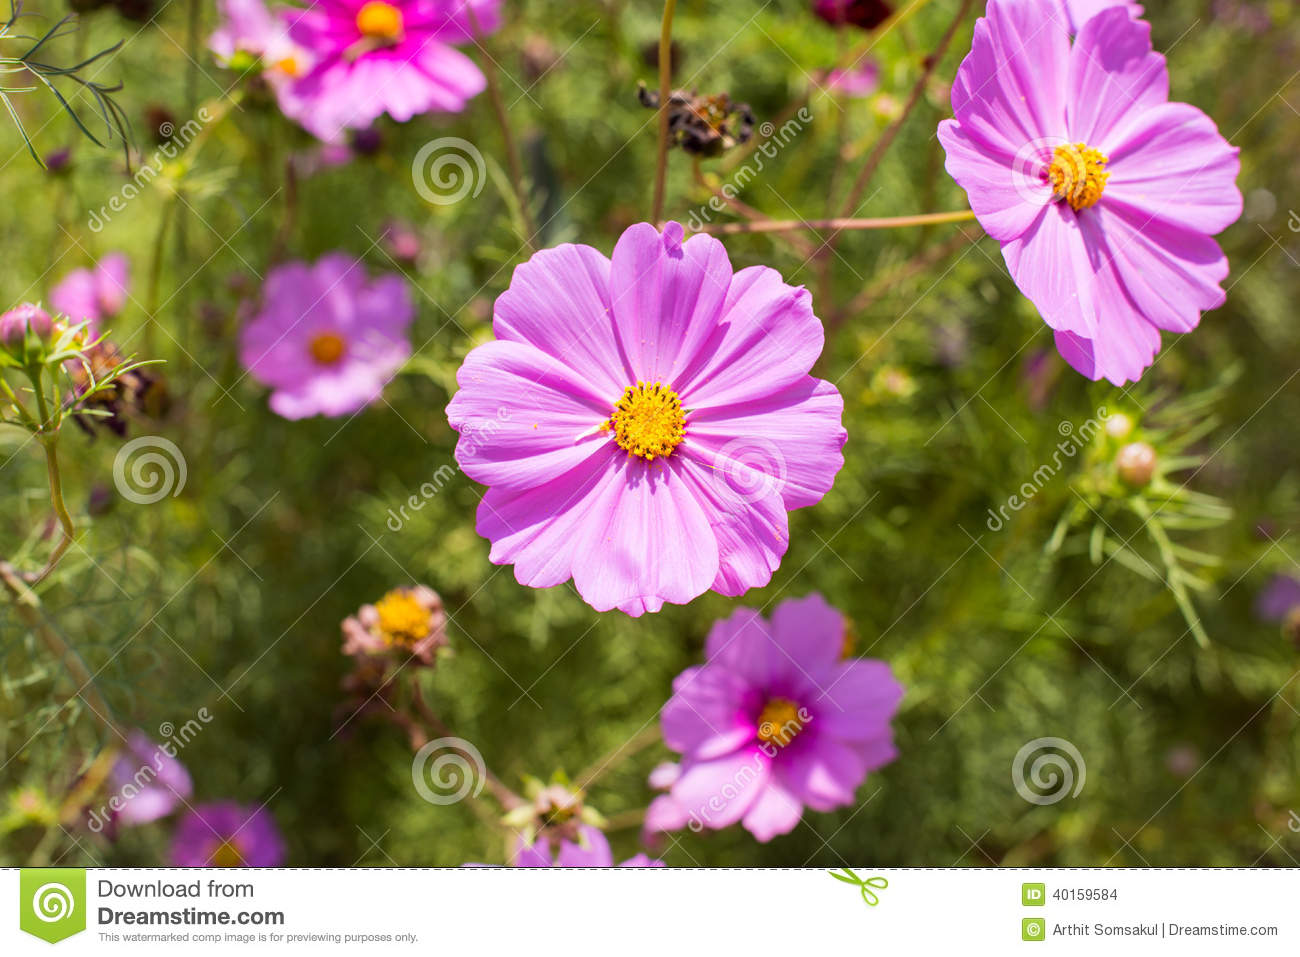 Summer Garden With Cosmos Flowers Stock Photo Image Of Botany